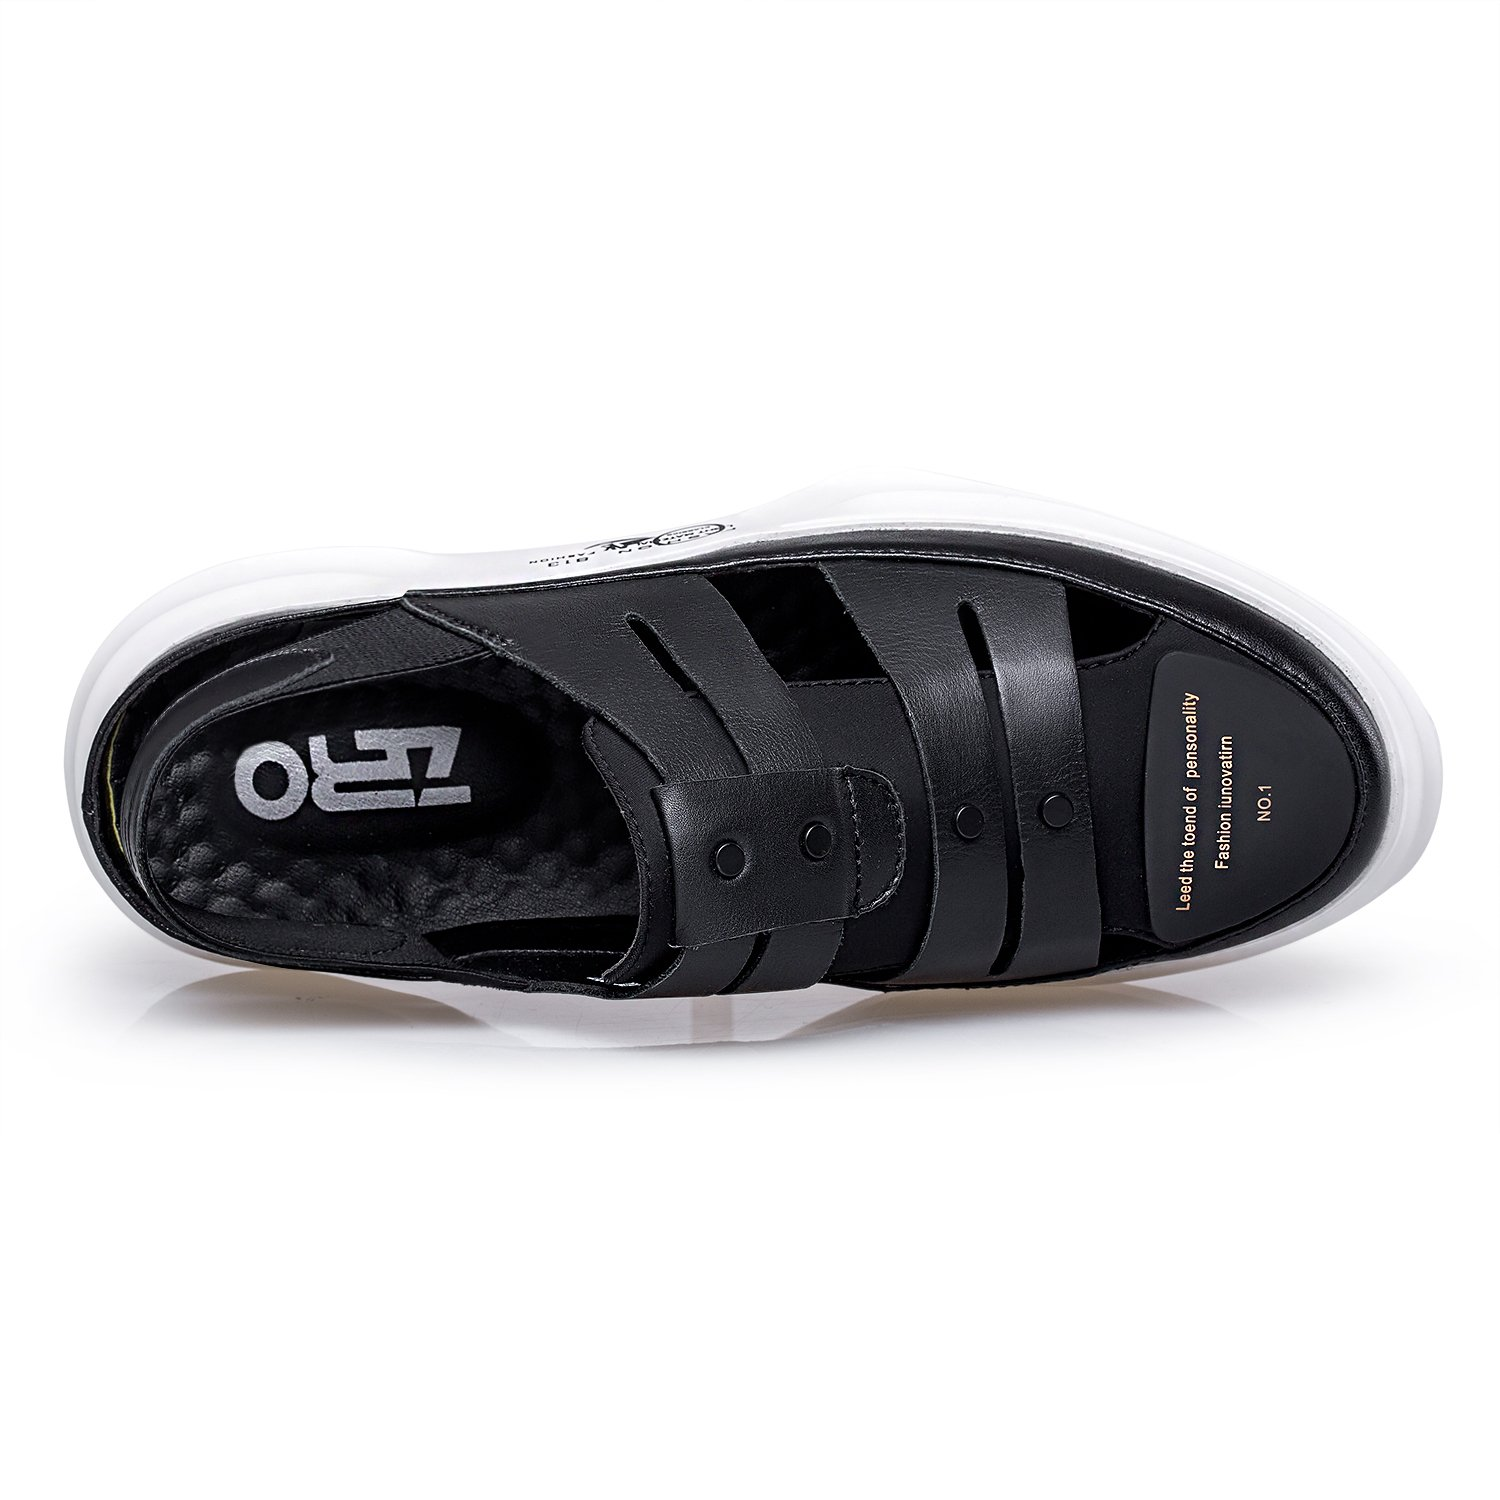 ZRO Mens Fashion Casual Closed Toe Sandals Comfort Shoes Breathable